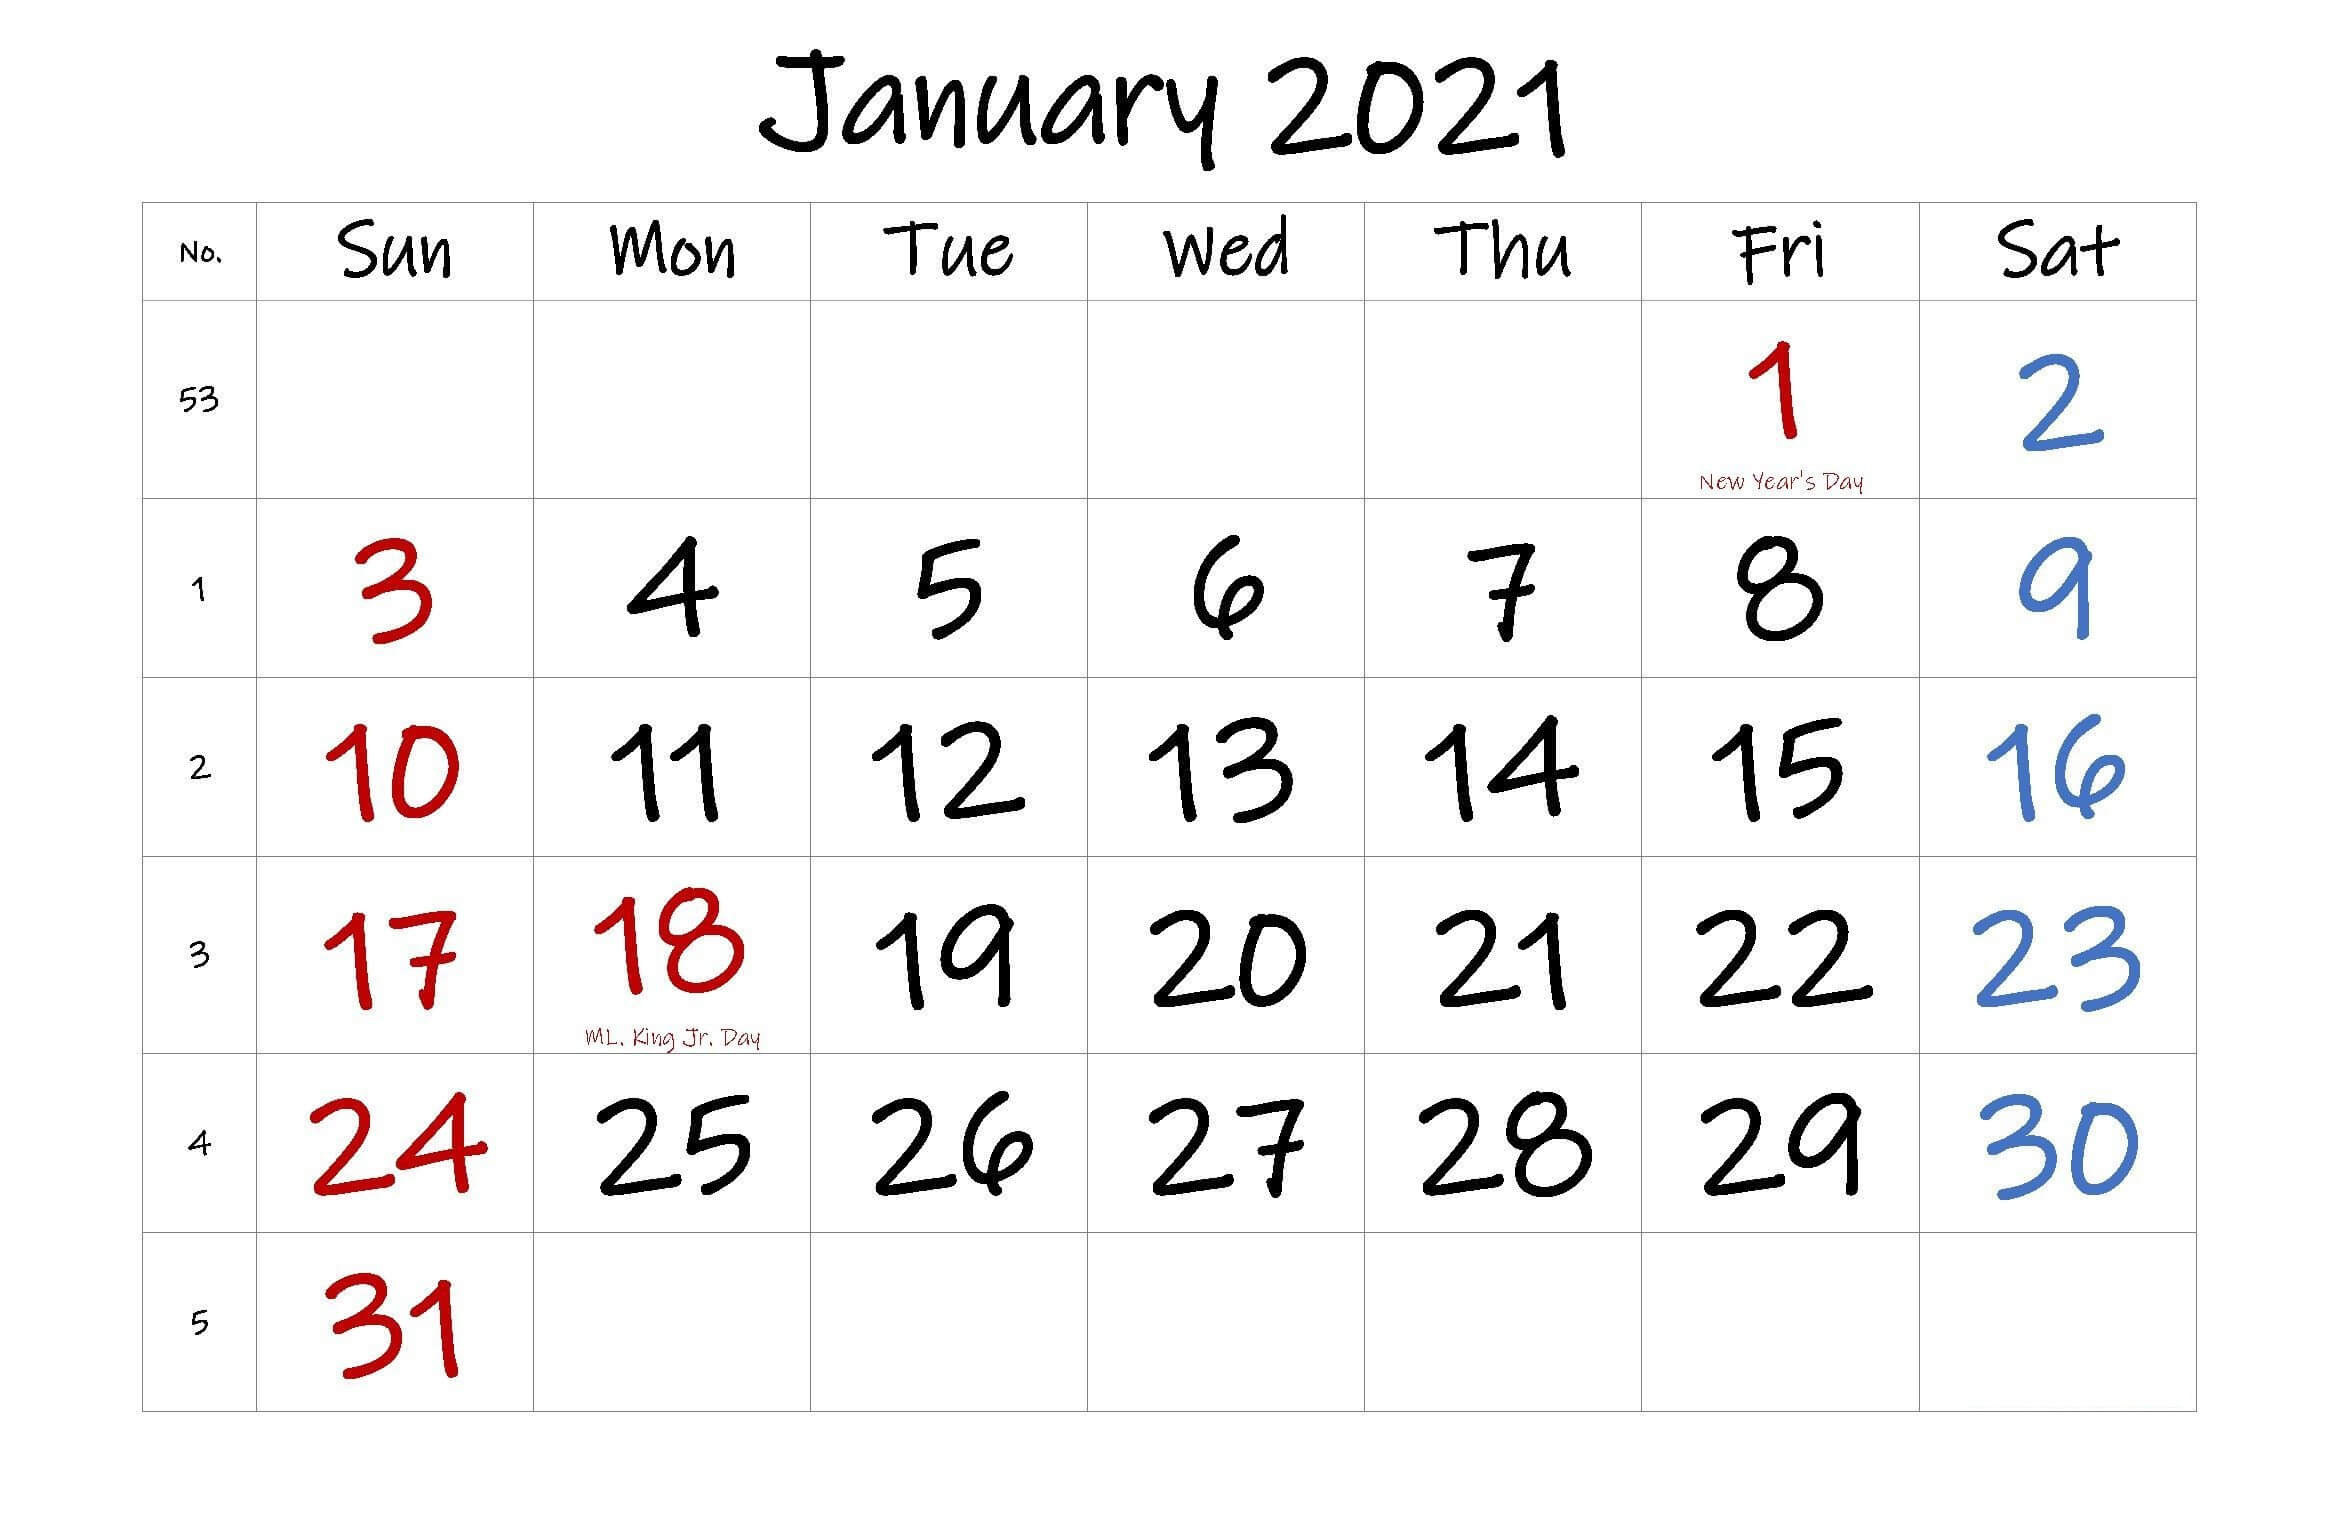 January 2021 Holidays Calendar